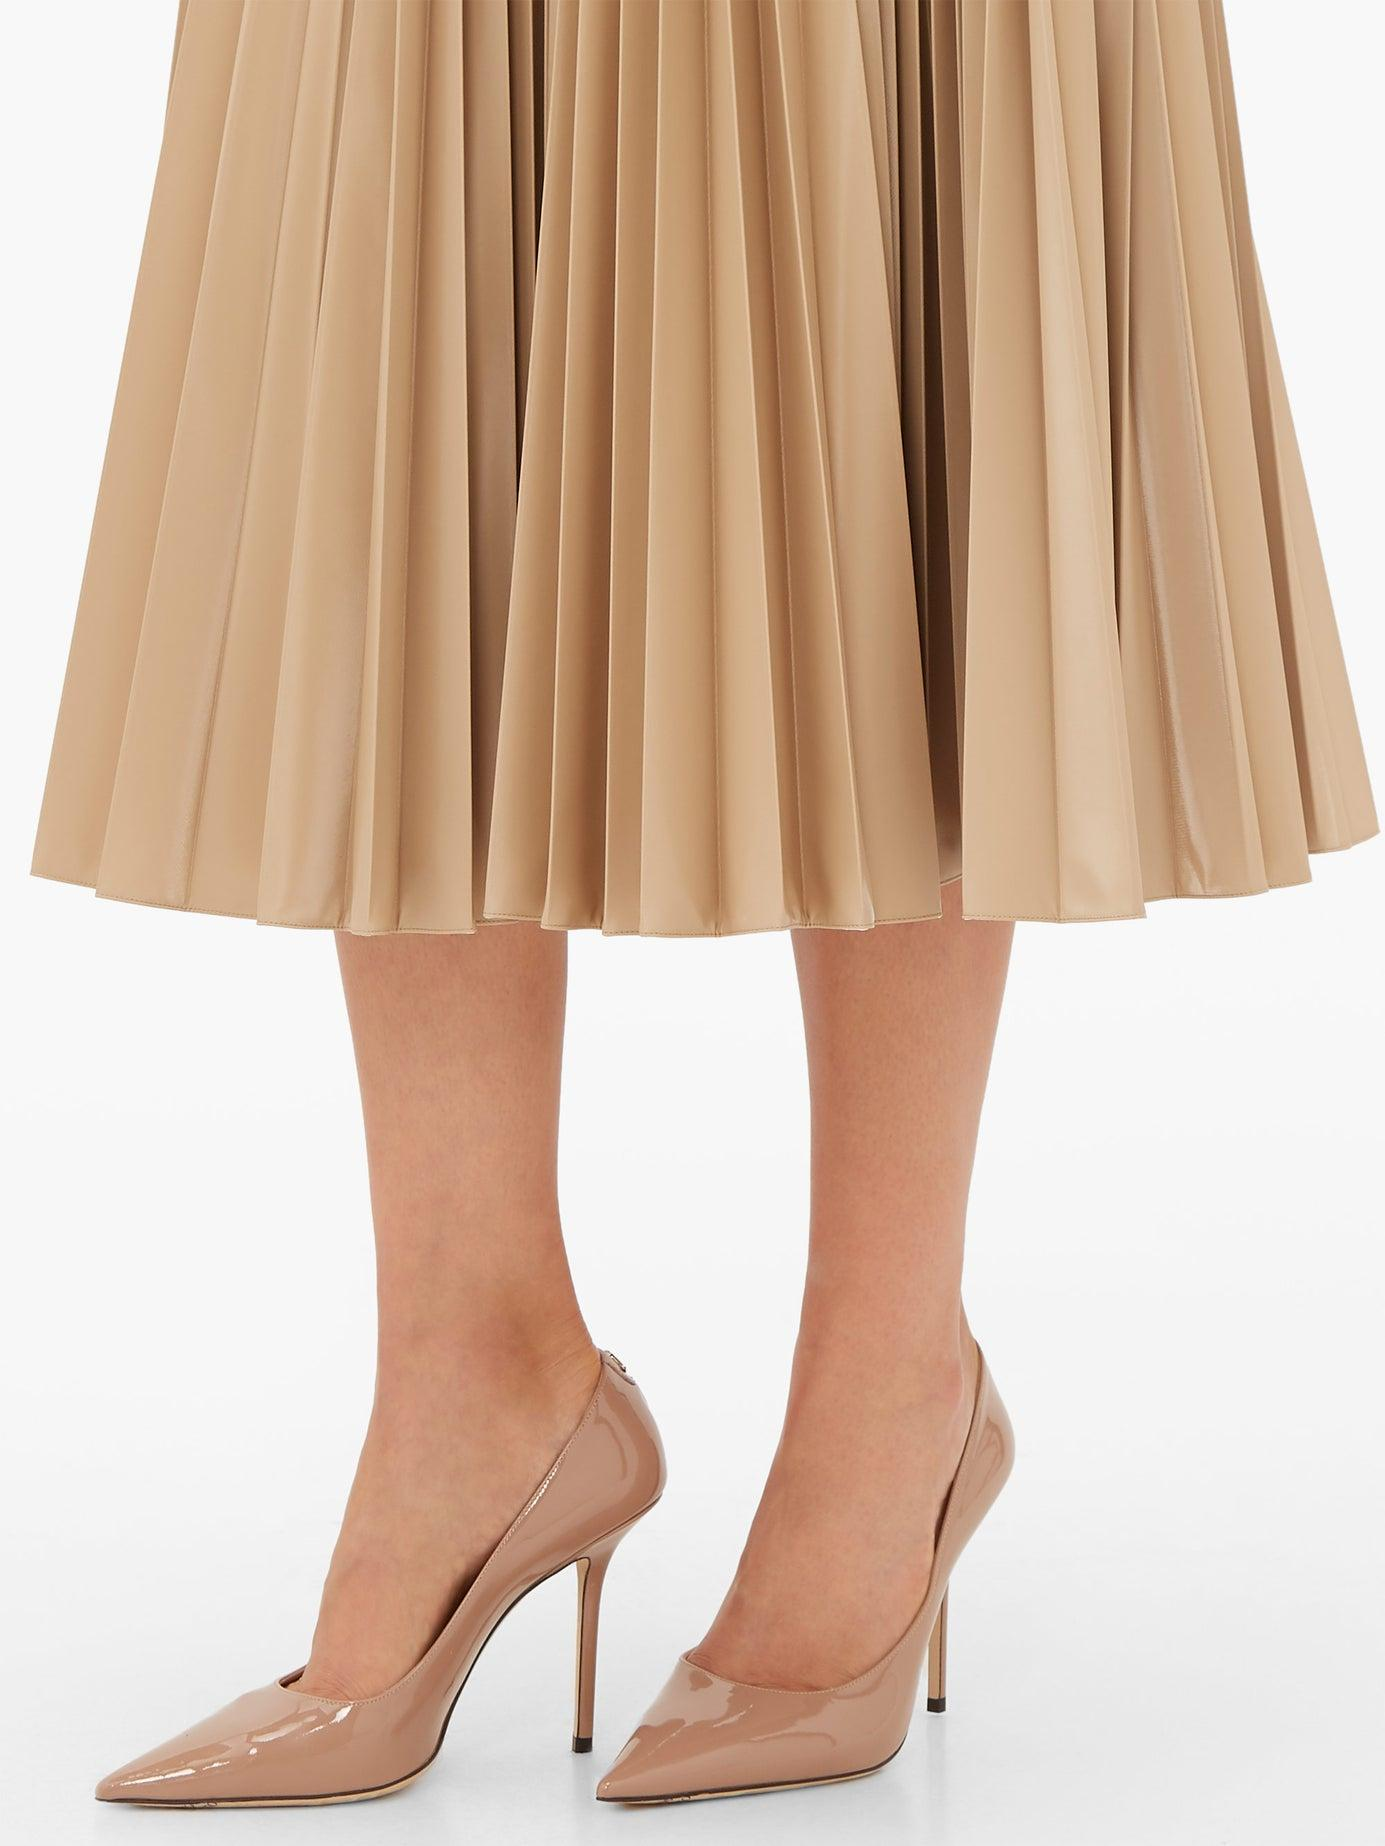 jimmy-choo-nude-Love-100-Patent-leather-Pumps